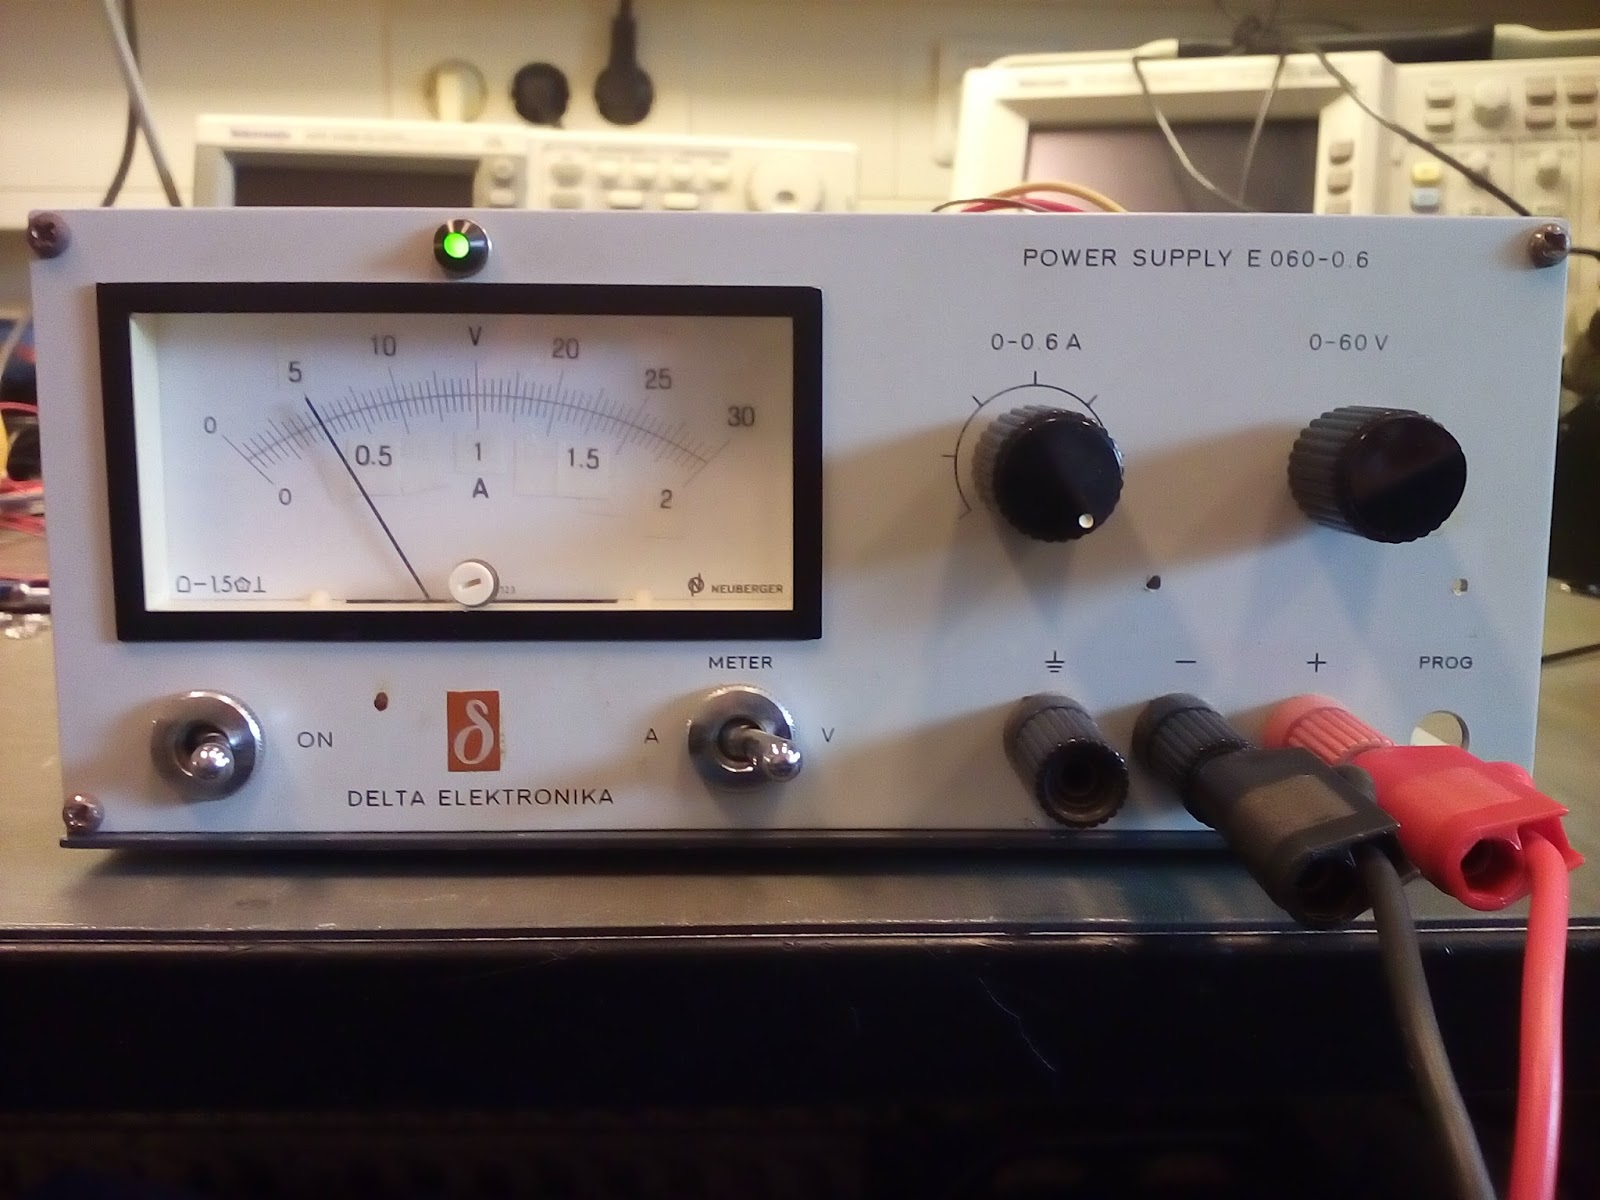 Remcos Blog Lm317 Benchtop Power Supply Current Source With This Time The Legendary One Used As Limitter And Other Voltage Regulator Enclosure From An Old Delta Elektronika